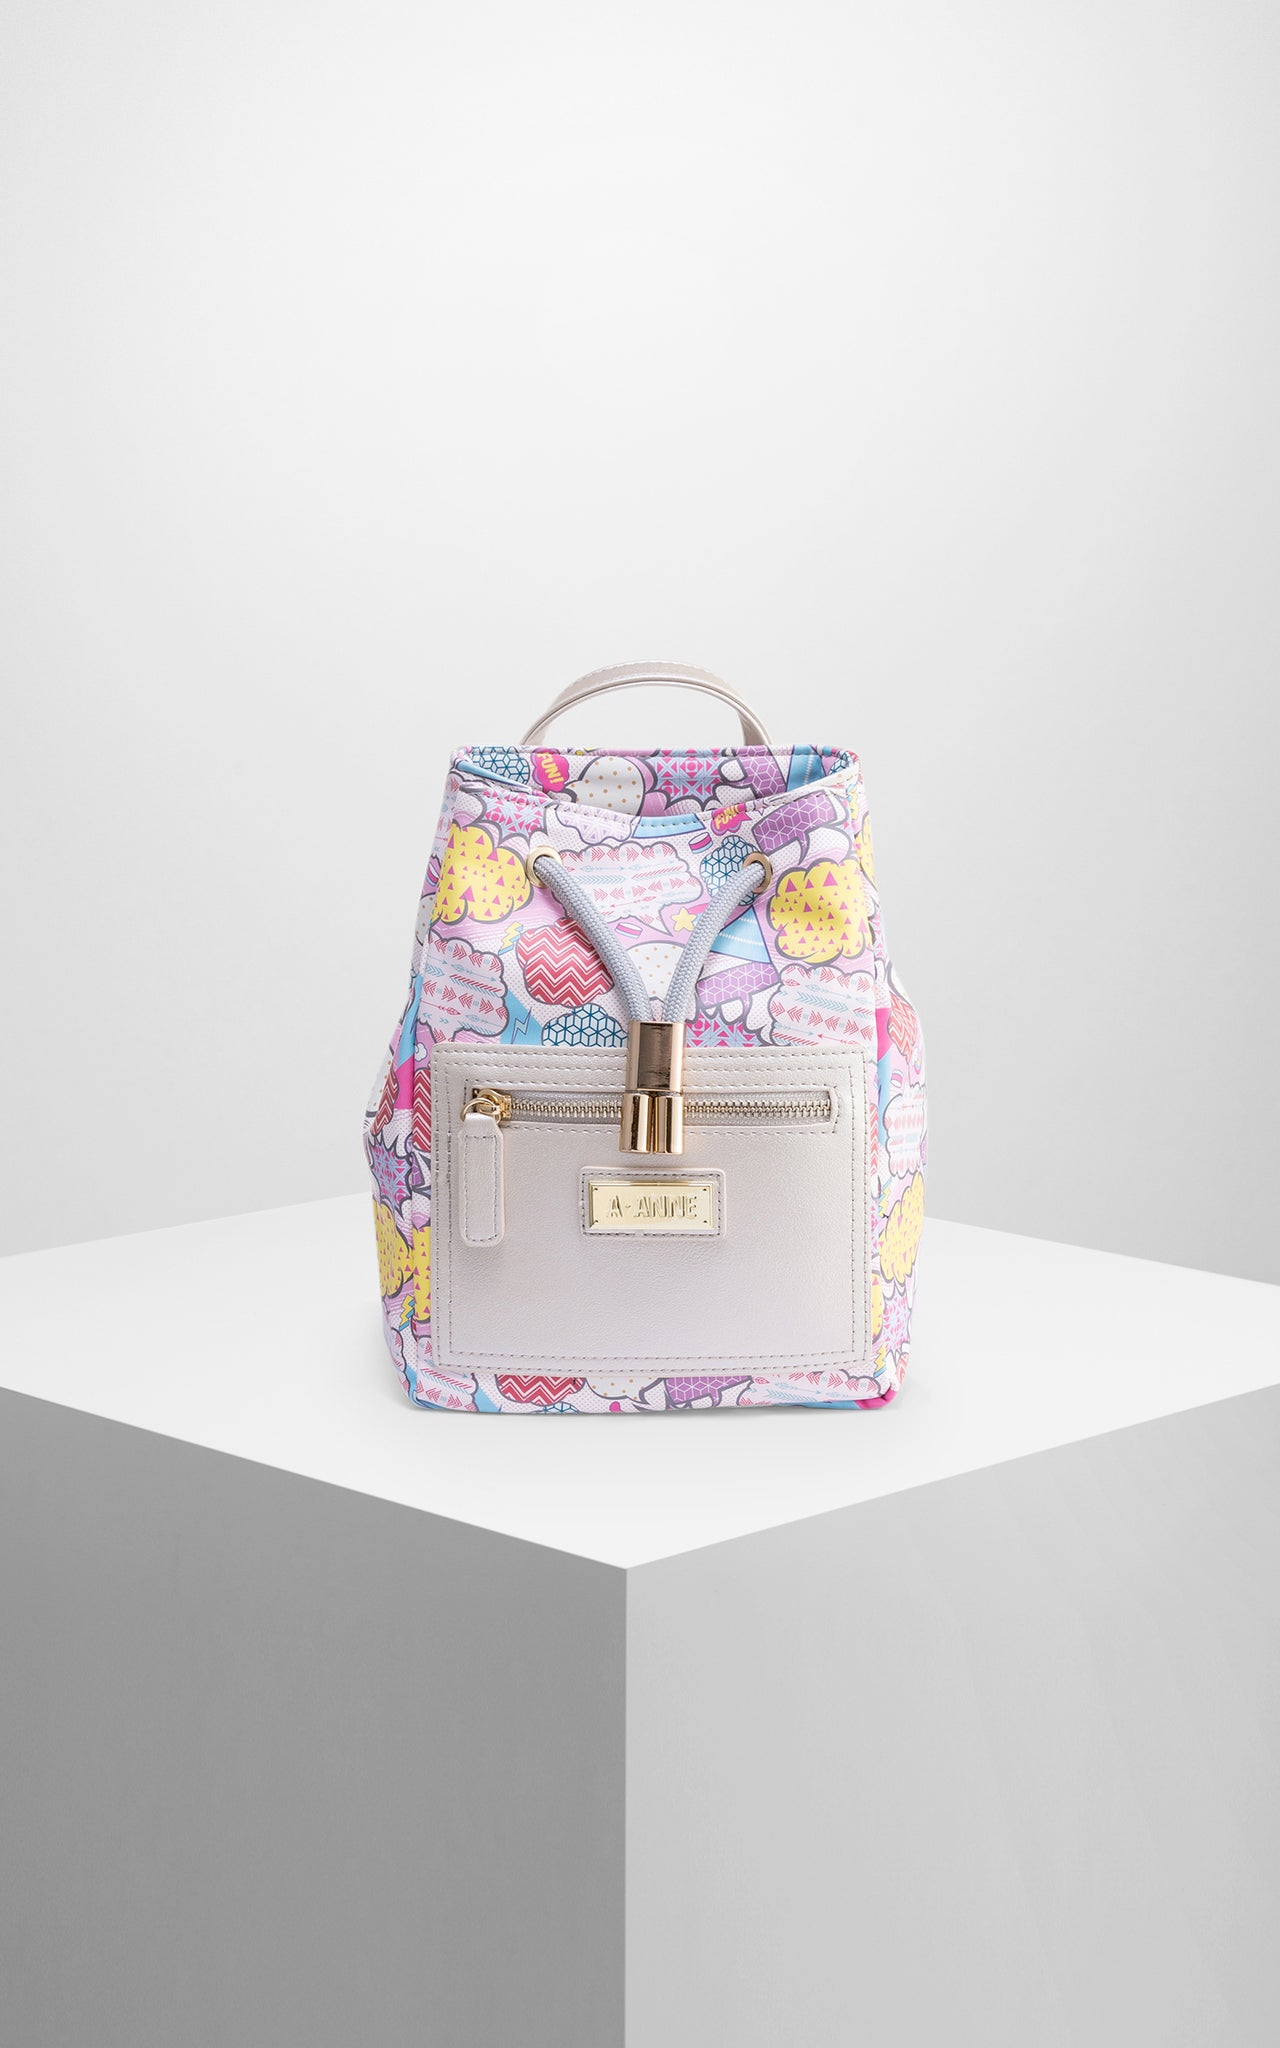 Femme Stories Mini Convertible Bucket Bag - A.Anne, Tokidoki, Ashlyn Anne, Fashion, Handbags, School, Bag, Accessories